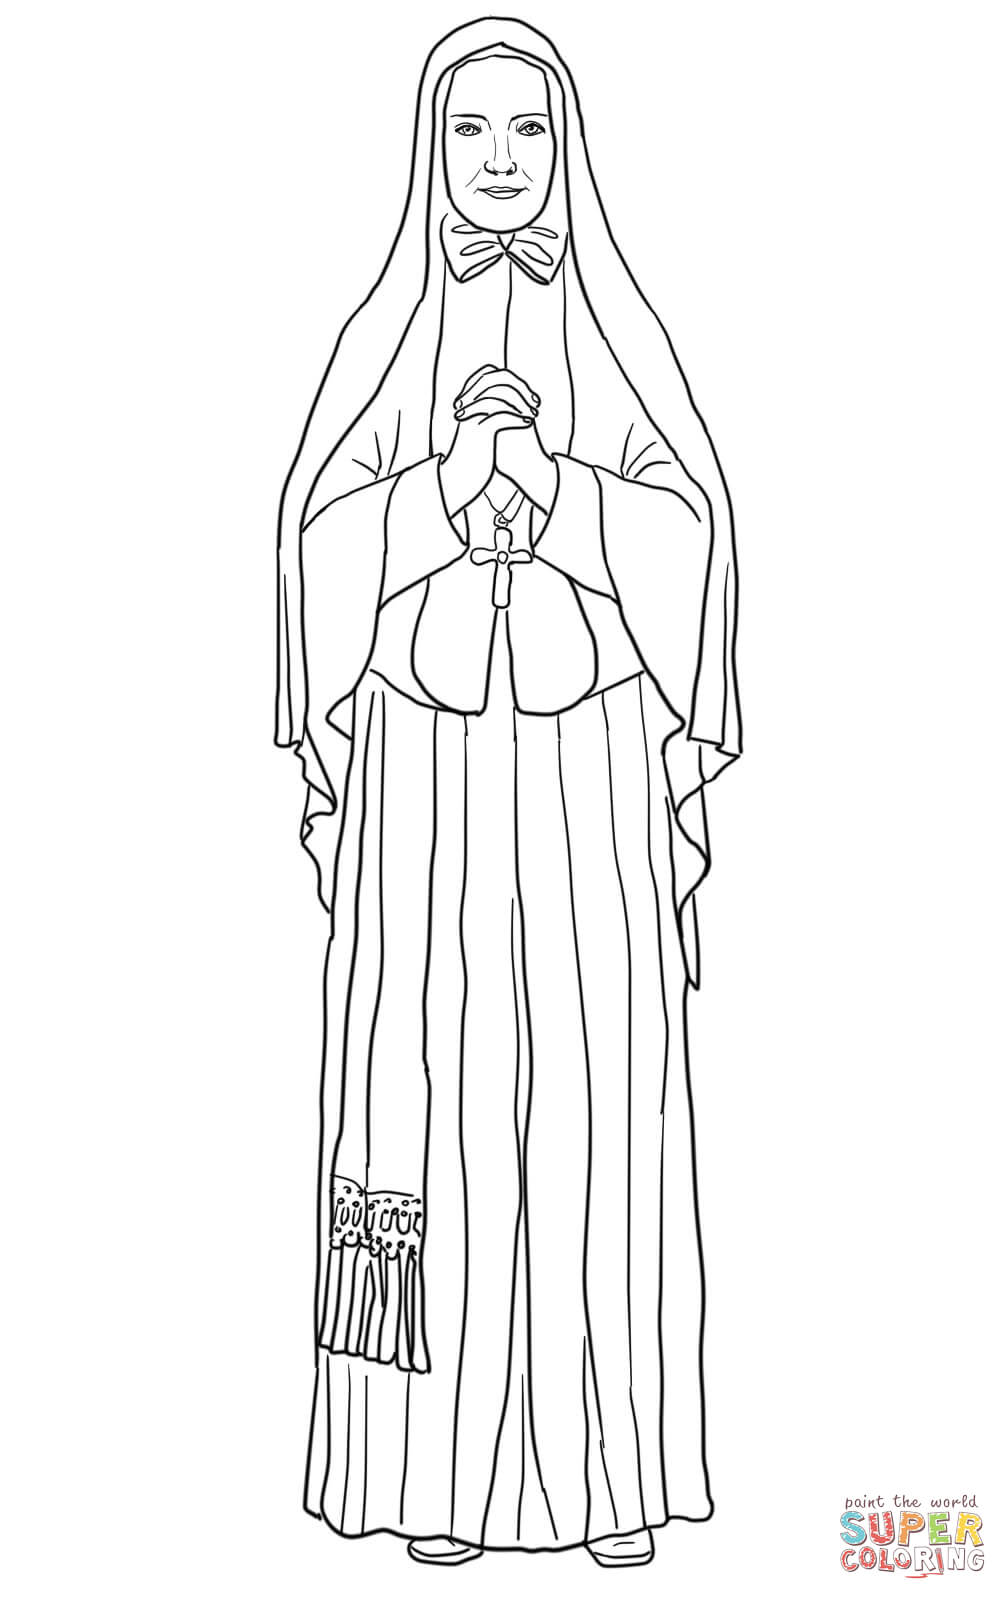 st francis xavier coloring page saint francis xavier clipart clipground francis coloring xavier st page